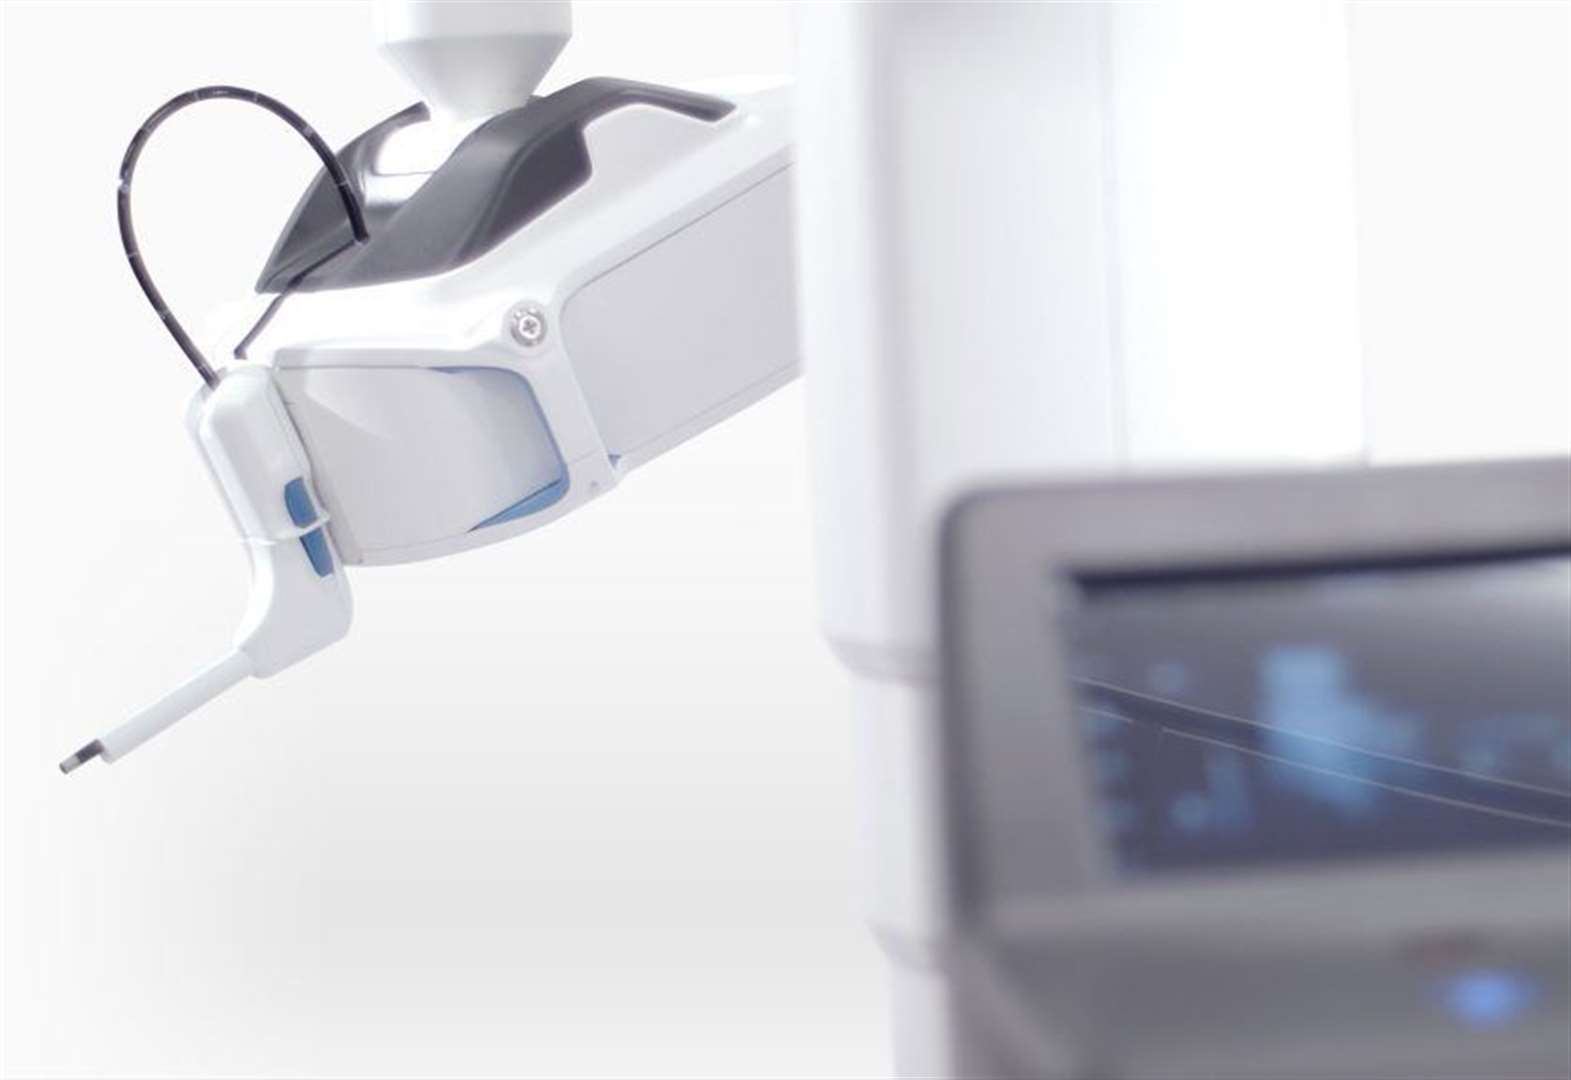 Cambridge Design Partnership works on new robotic surgery system with Titan Medical